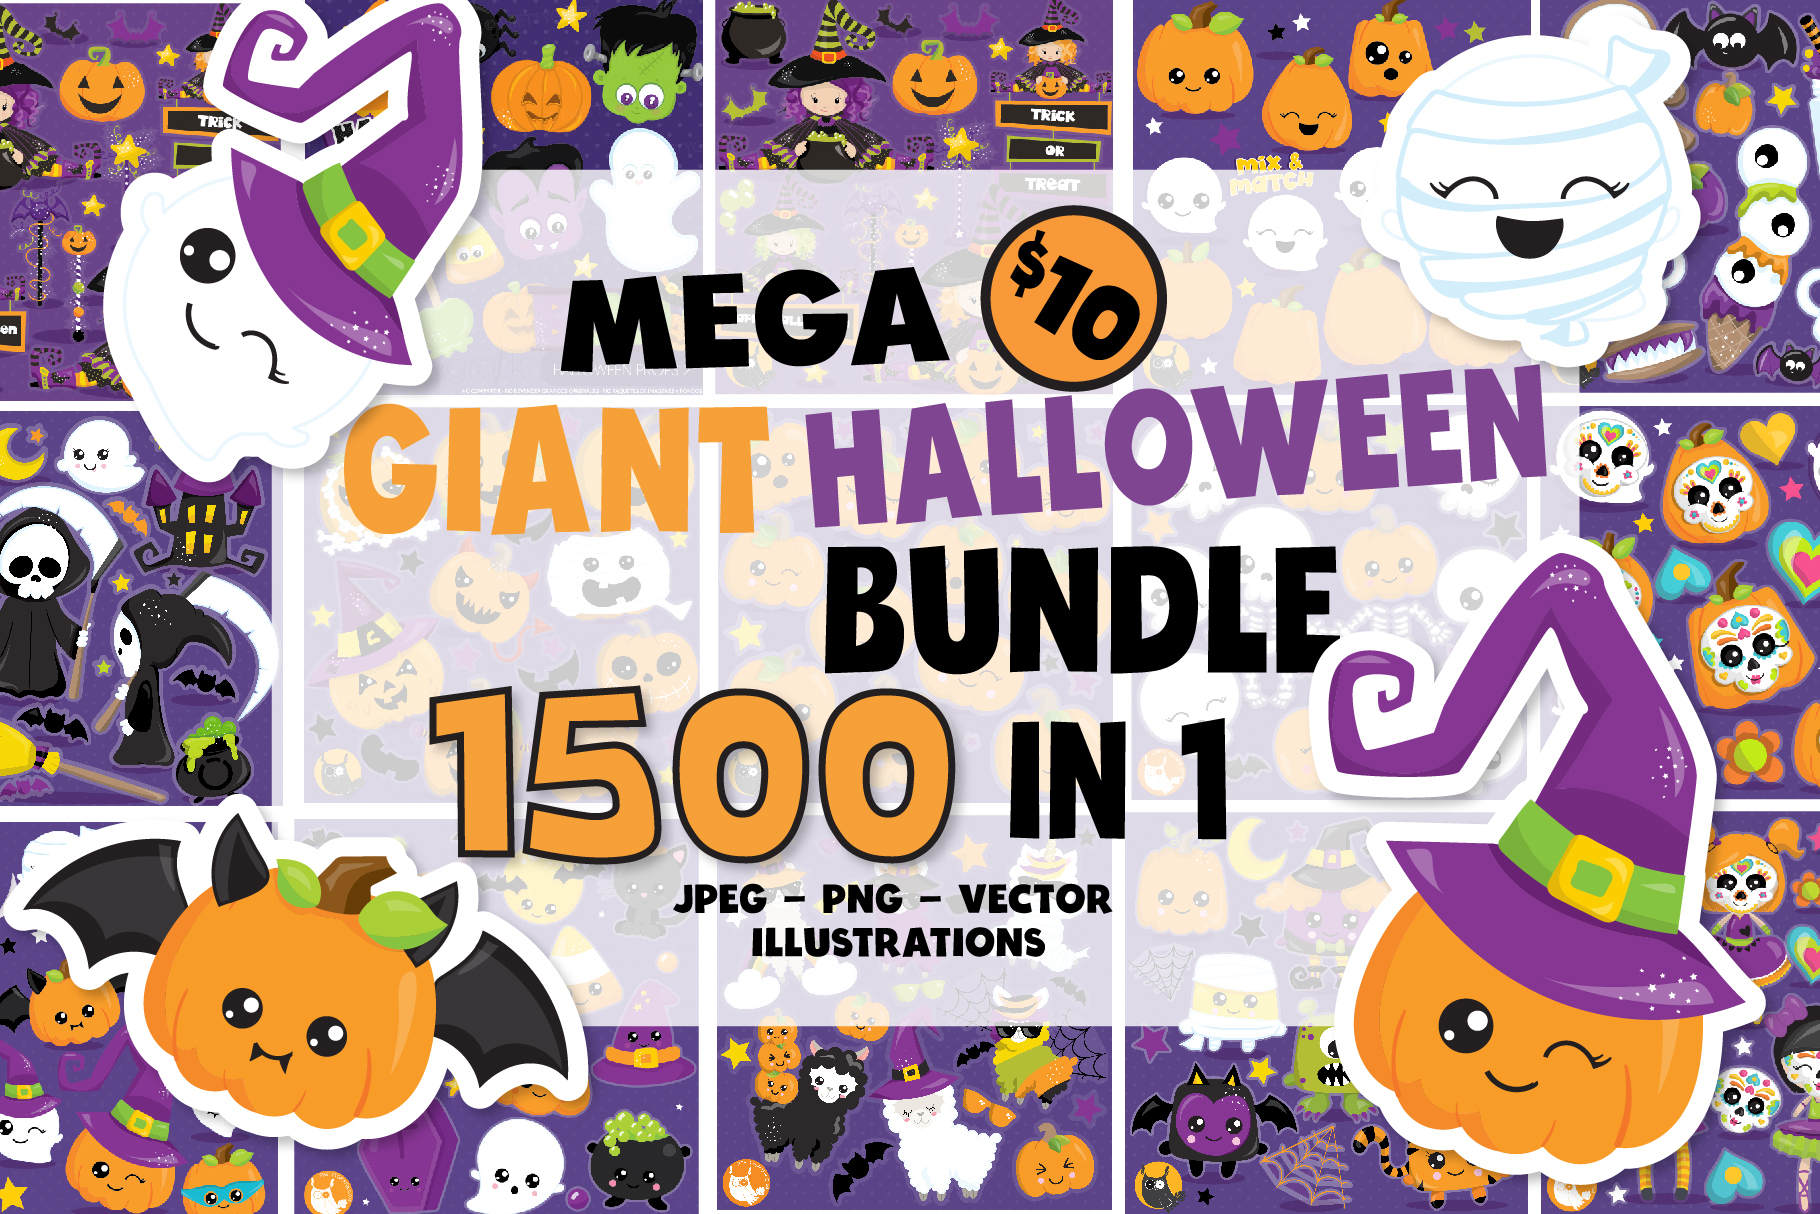 Download Free 1500 Graphic Mega Halloween Bundle Graphic By Prettygrafik for Cricut Explore, Silhouette and other cutting machines.